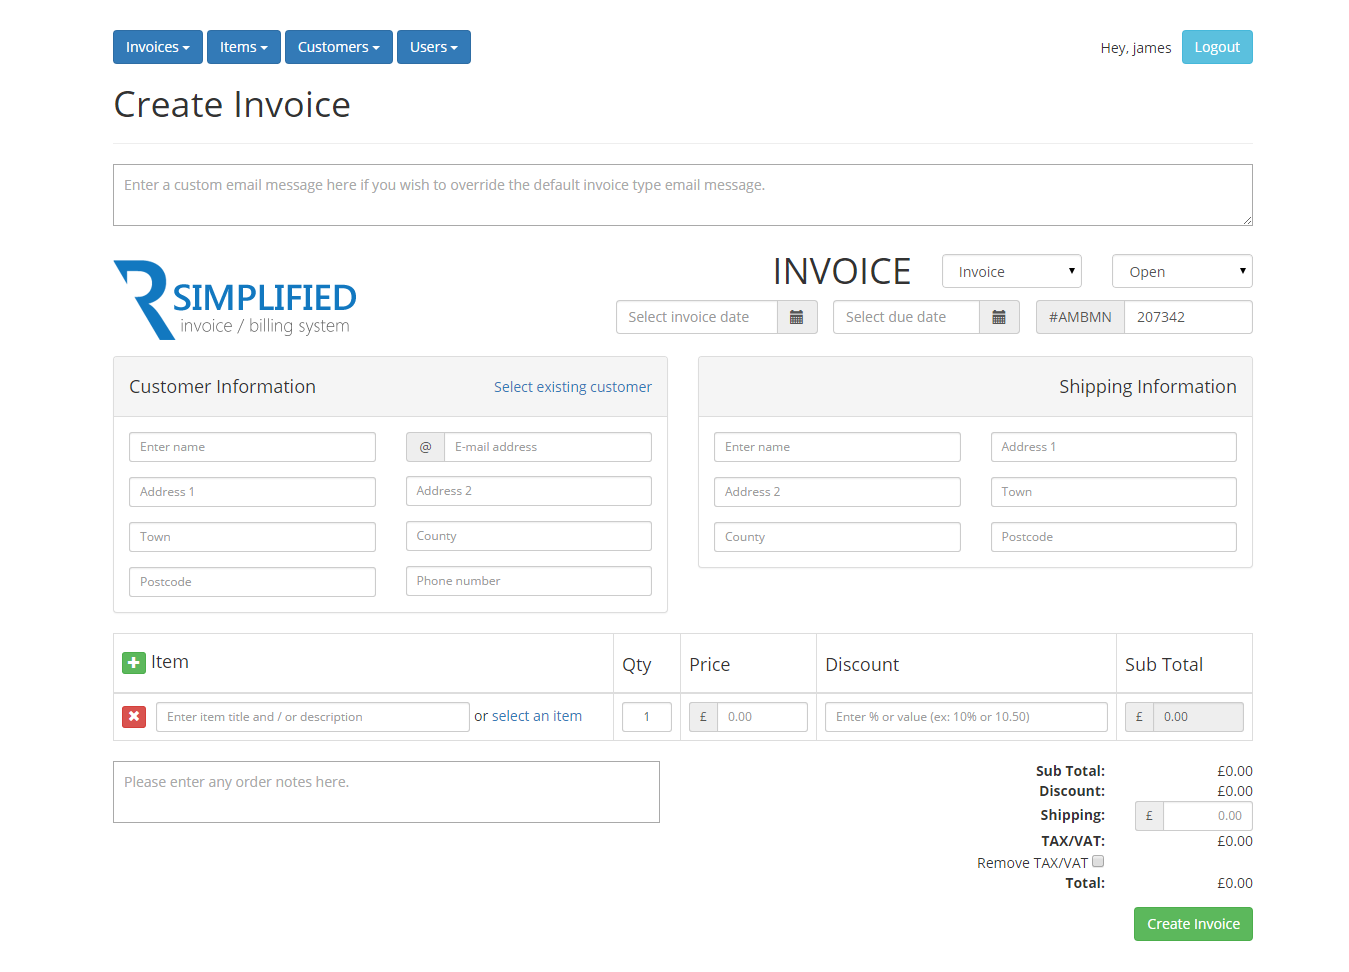 Darkfaderus  Marvellous Simplified Php Invoice  Billing System By Rebootdigitaluk  With Foxy  Createinvoicepng  With Captivating Invoice Template Docx Also Best Online Invoicing In Addition Costco Invoice And Invoice Mailing Service As Well As Find Dealer Invoice Price Additionally Proforma Invoice Pdf From Codecanyonnet With Darkfaderus  Foxy Simplified Php Invoice  Billing System By Rebootdigitaluk  With Captivating  Createinvoicepng  And Marvellous Invoice Template Docx Also Best Online Invoicing In Addition Costco Invoice From Codecanyonnet